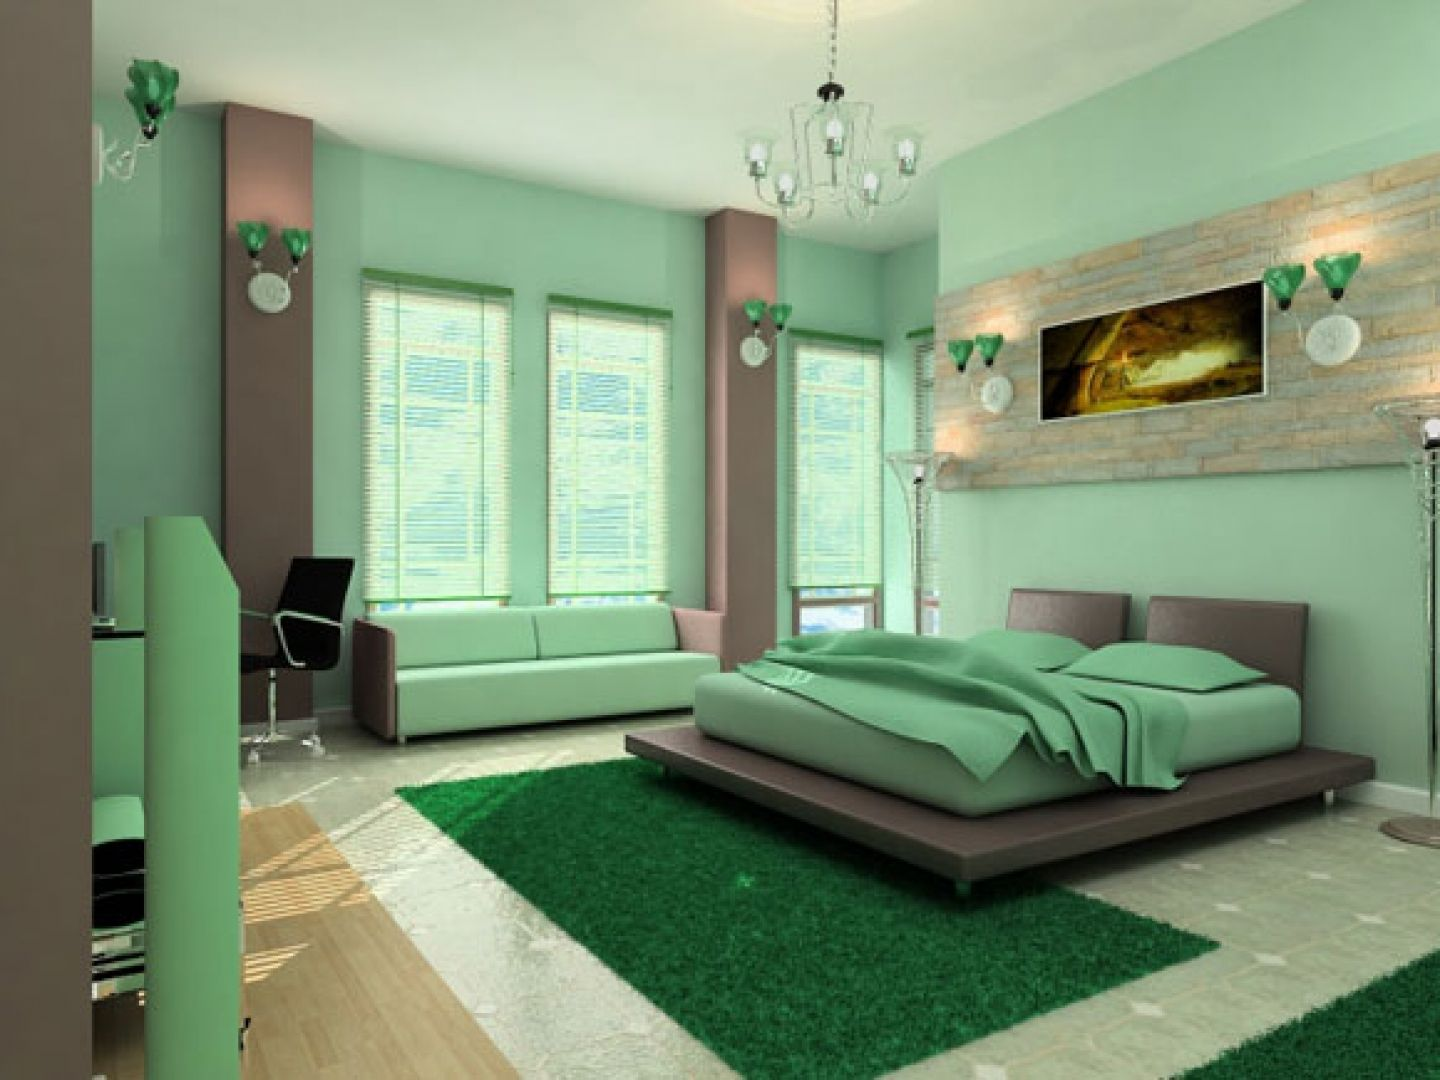 The combination of green with others in the interior